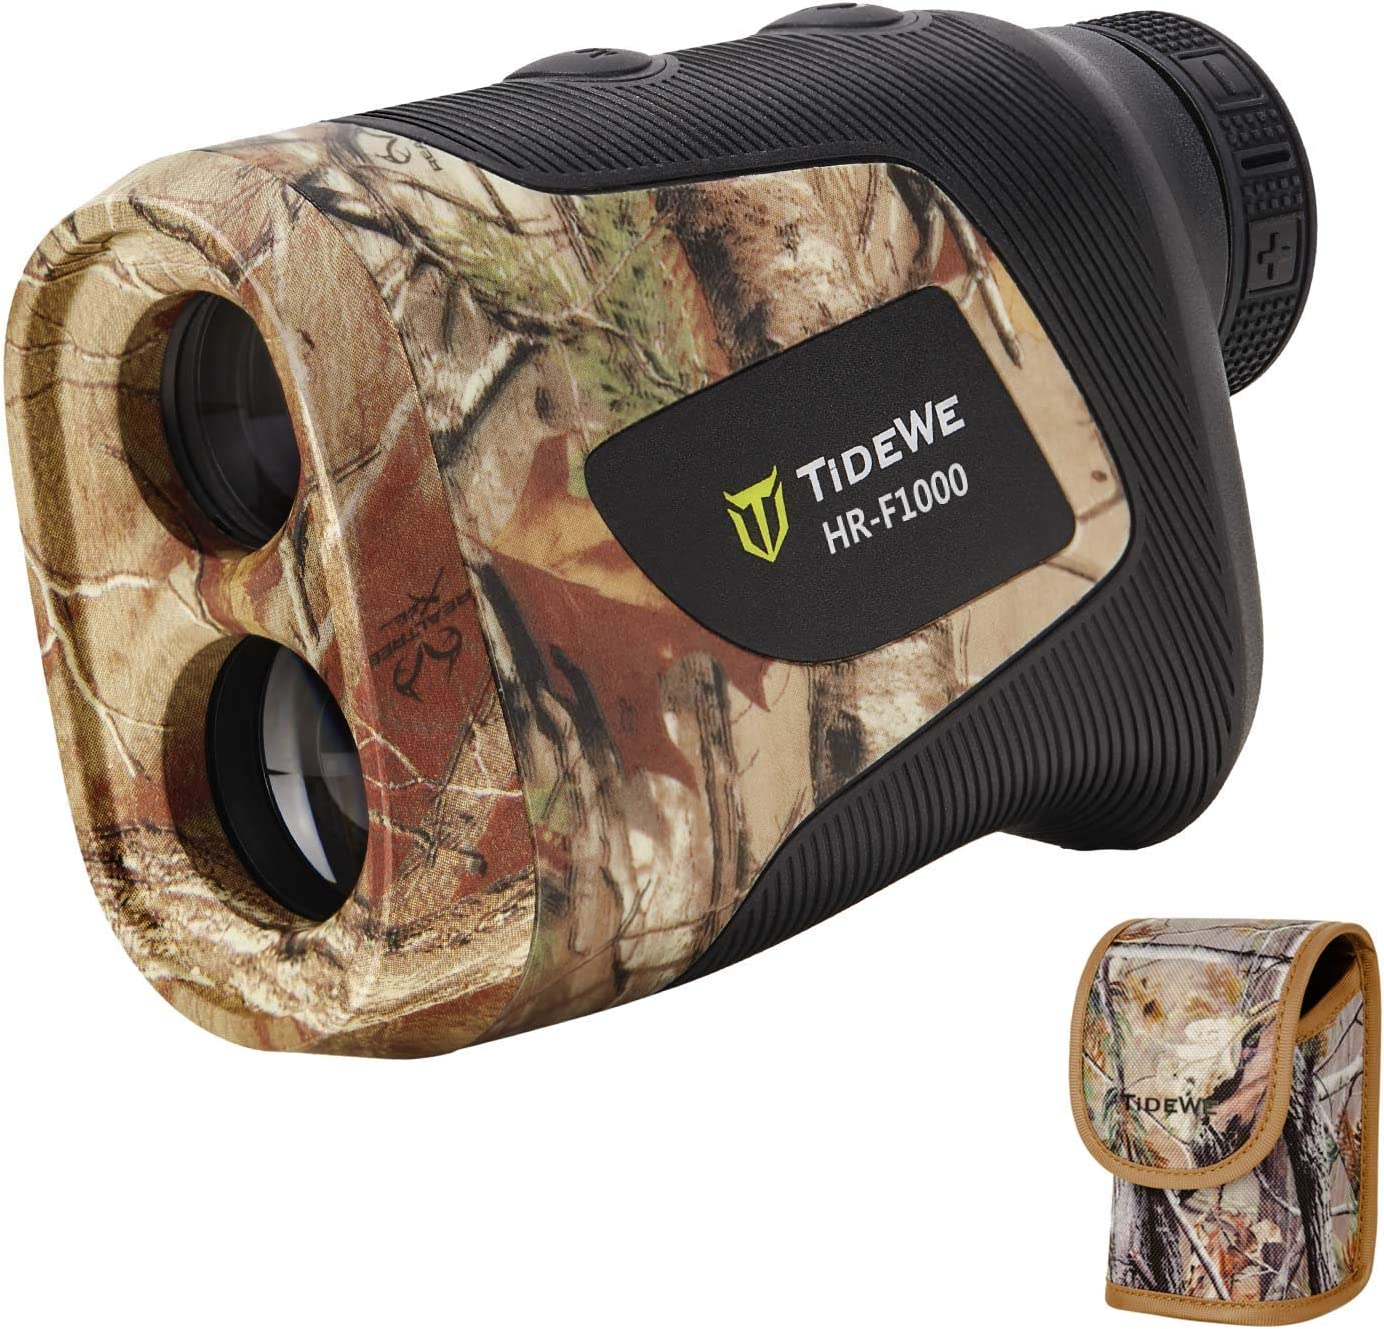 TIDEWE Hunting Ranking TOP6 Rangefinder with 700 Minneapolis Mall 1000Y Rechargeable Battery